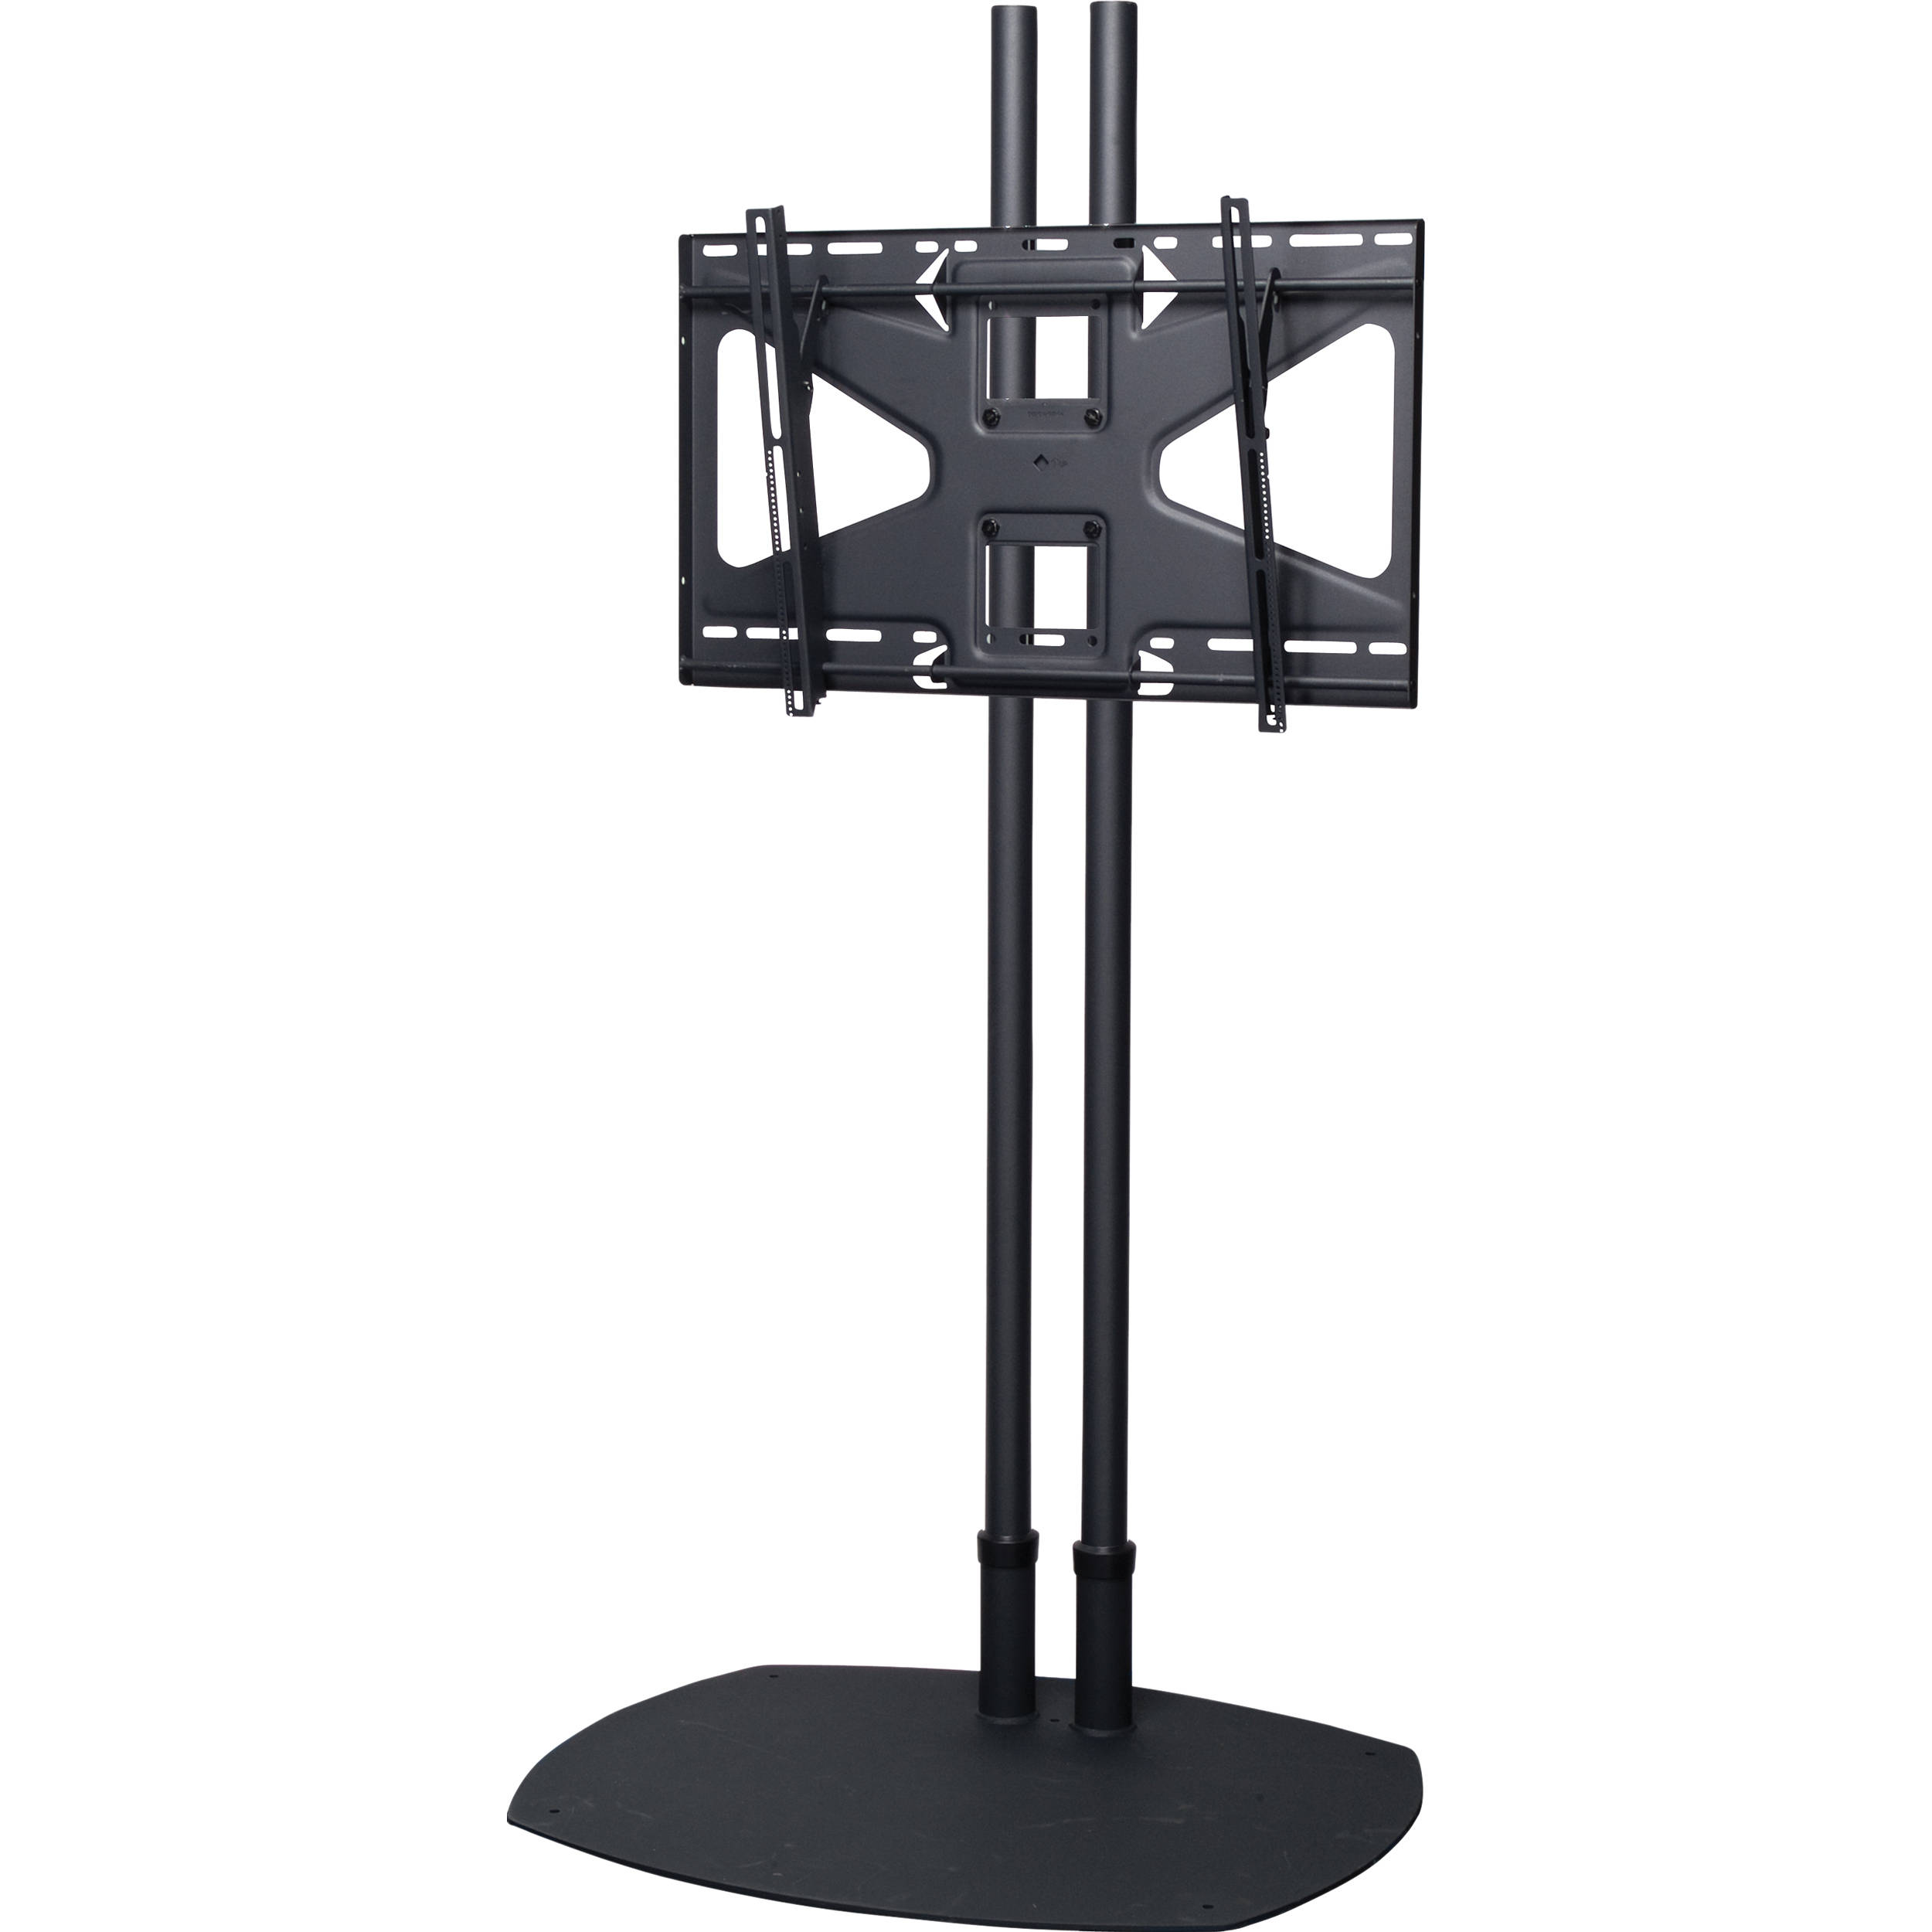 Premier mounts ts72b ms2 floor stand combination ts72b ms2 b h for Stand 2 b